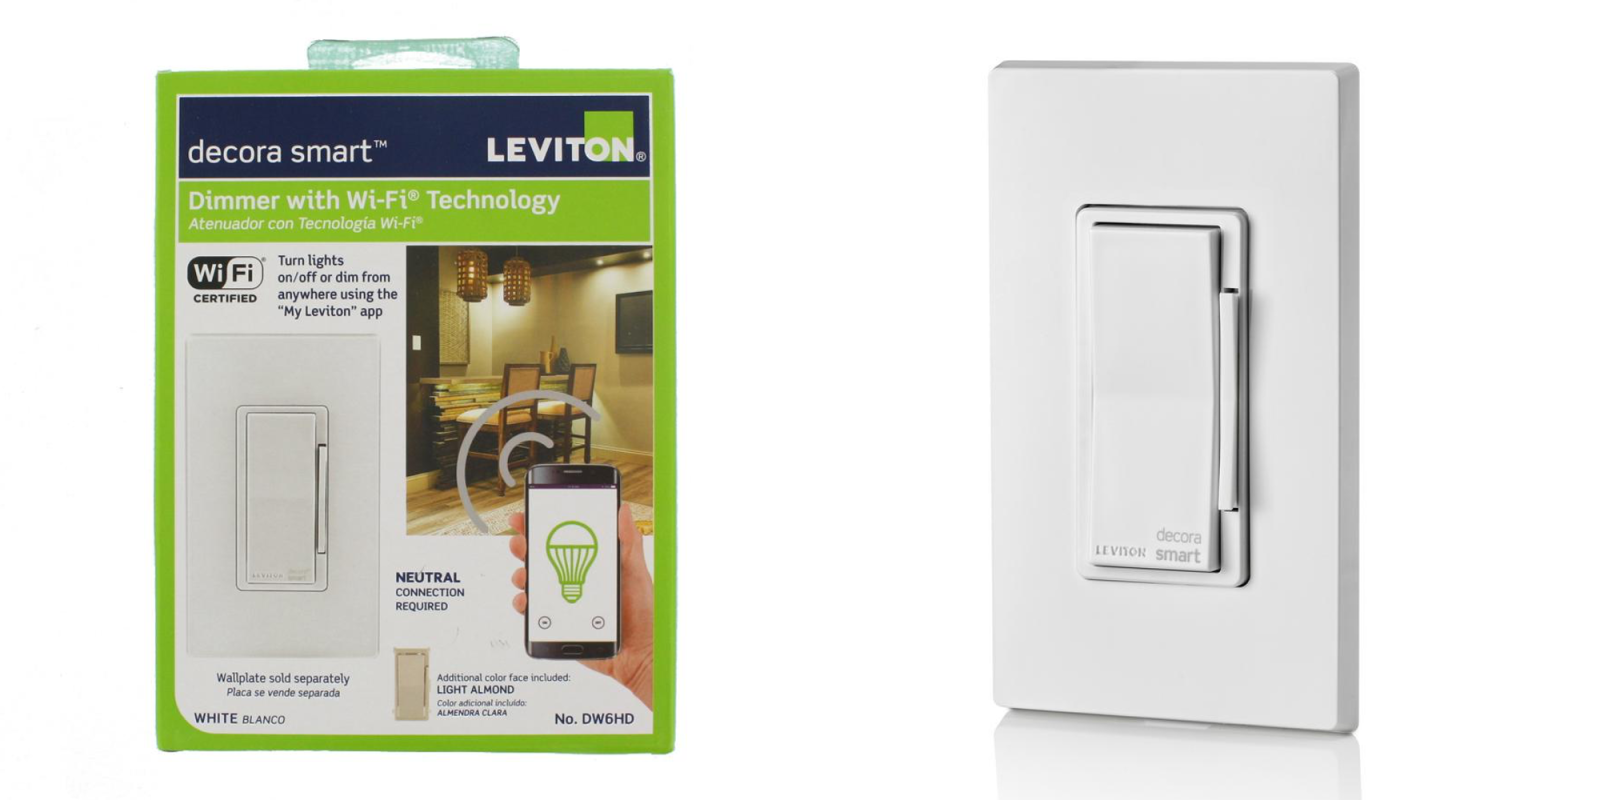 Leviton Decora Smart Wi-Fi LED Dimmer Switch: $40 shipped (Reg. $50 ...